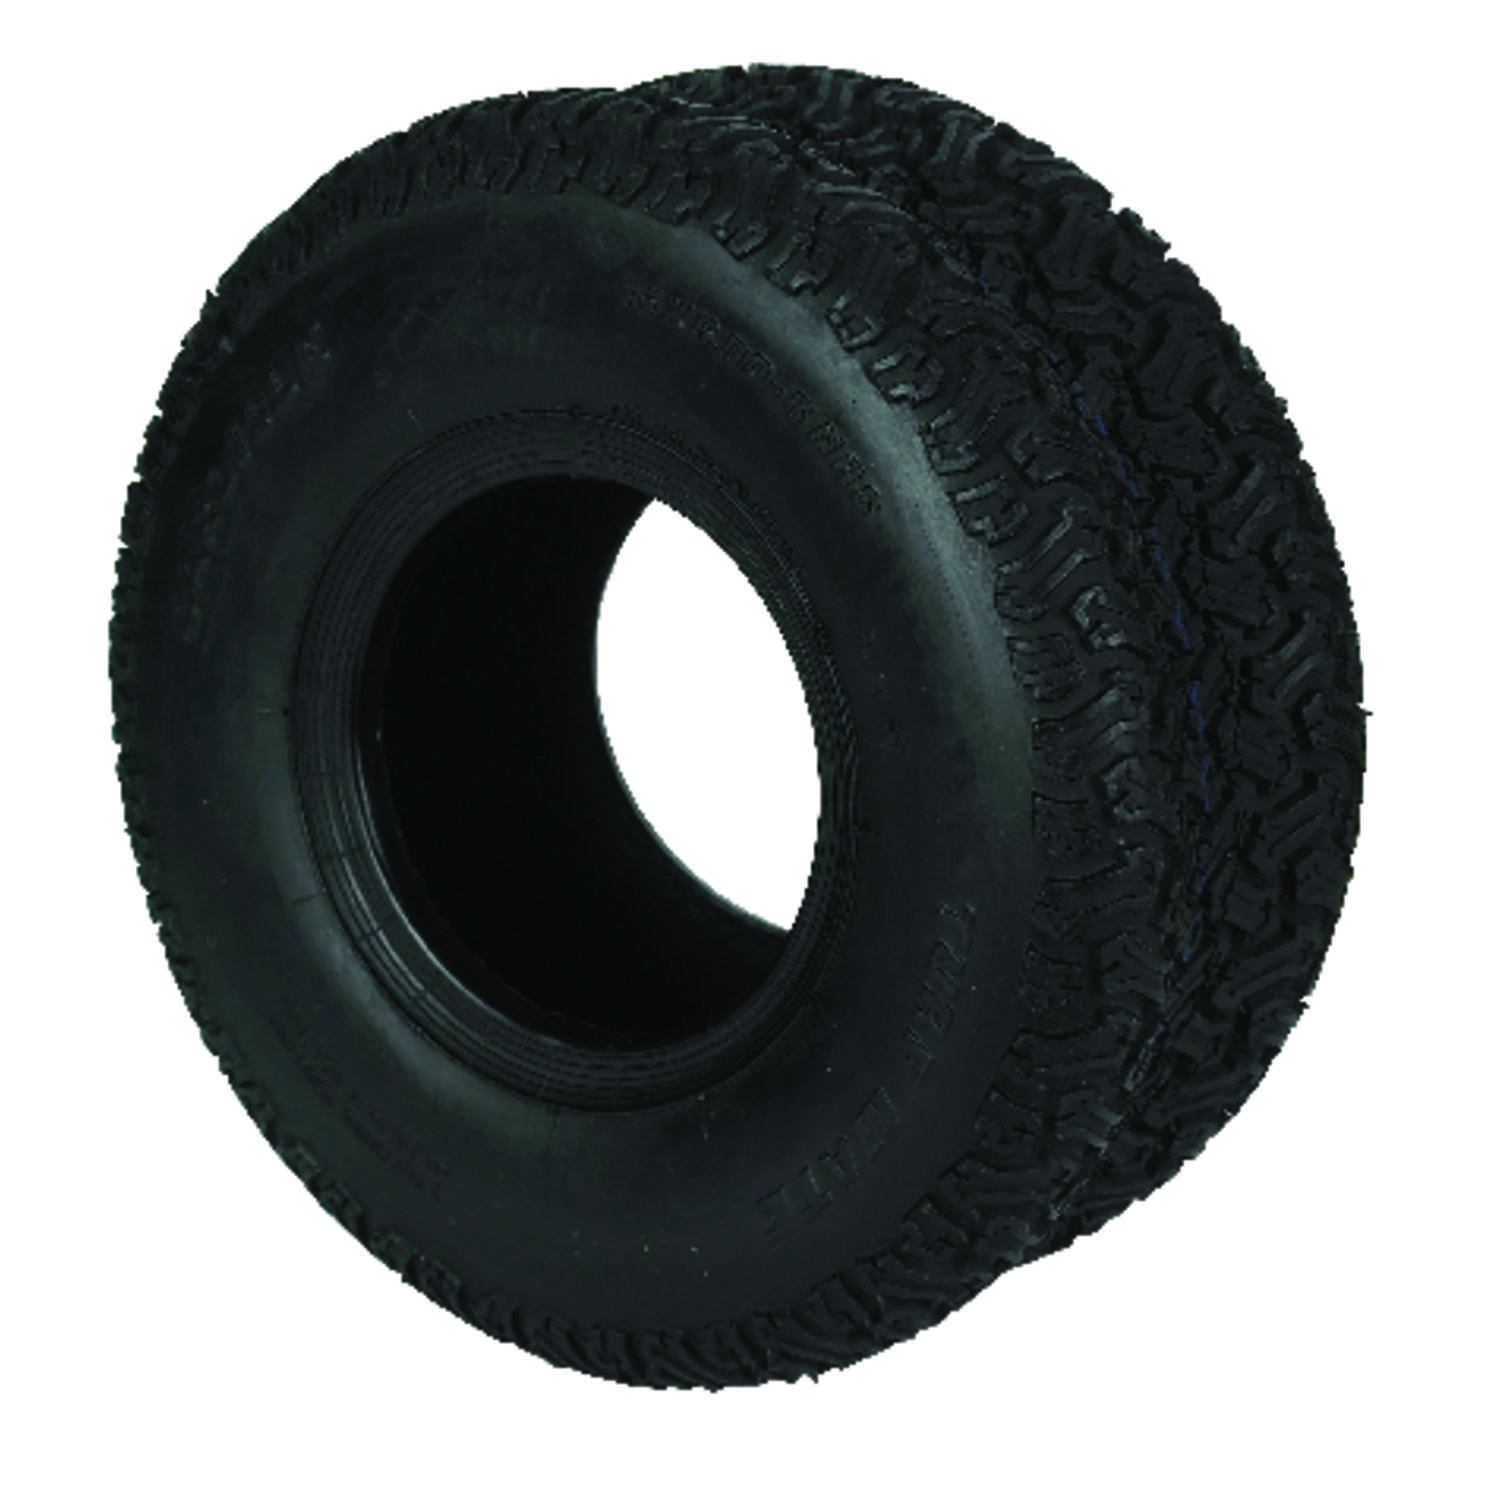 Arnold  2-Ply Off-Road  6 in. W x 15 in. Dia. Pneumatic  Lawn Mower Replacement Tire  500 lb.